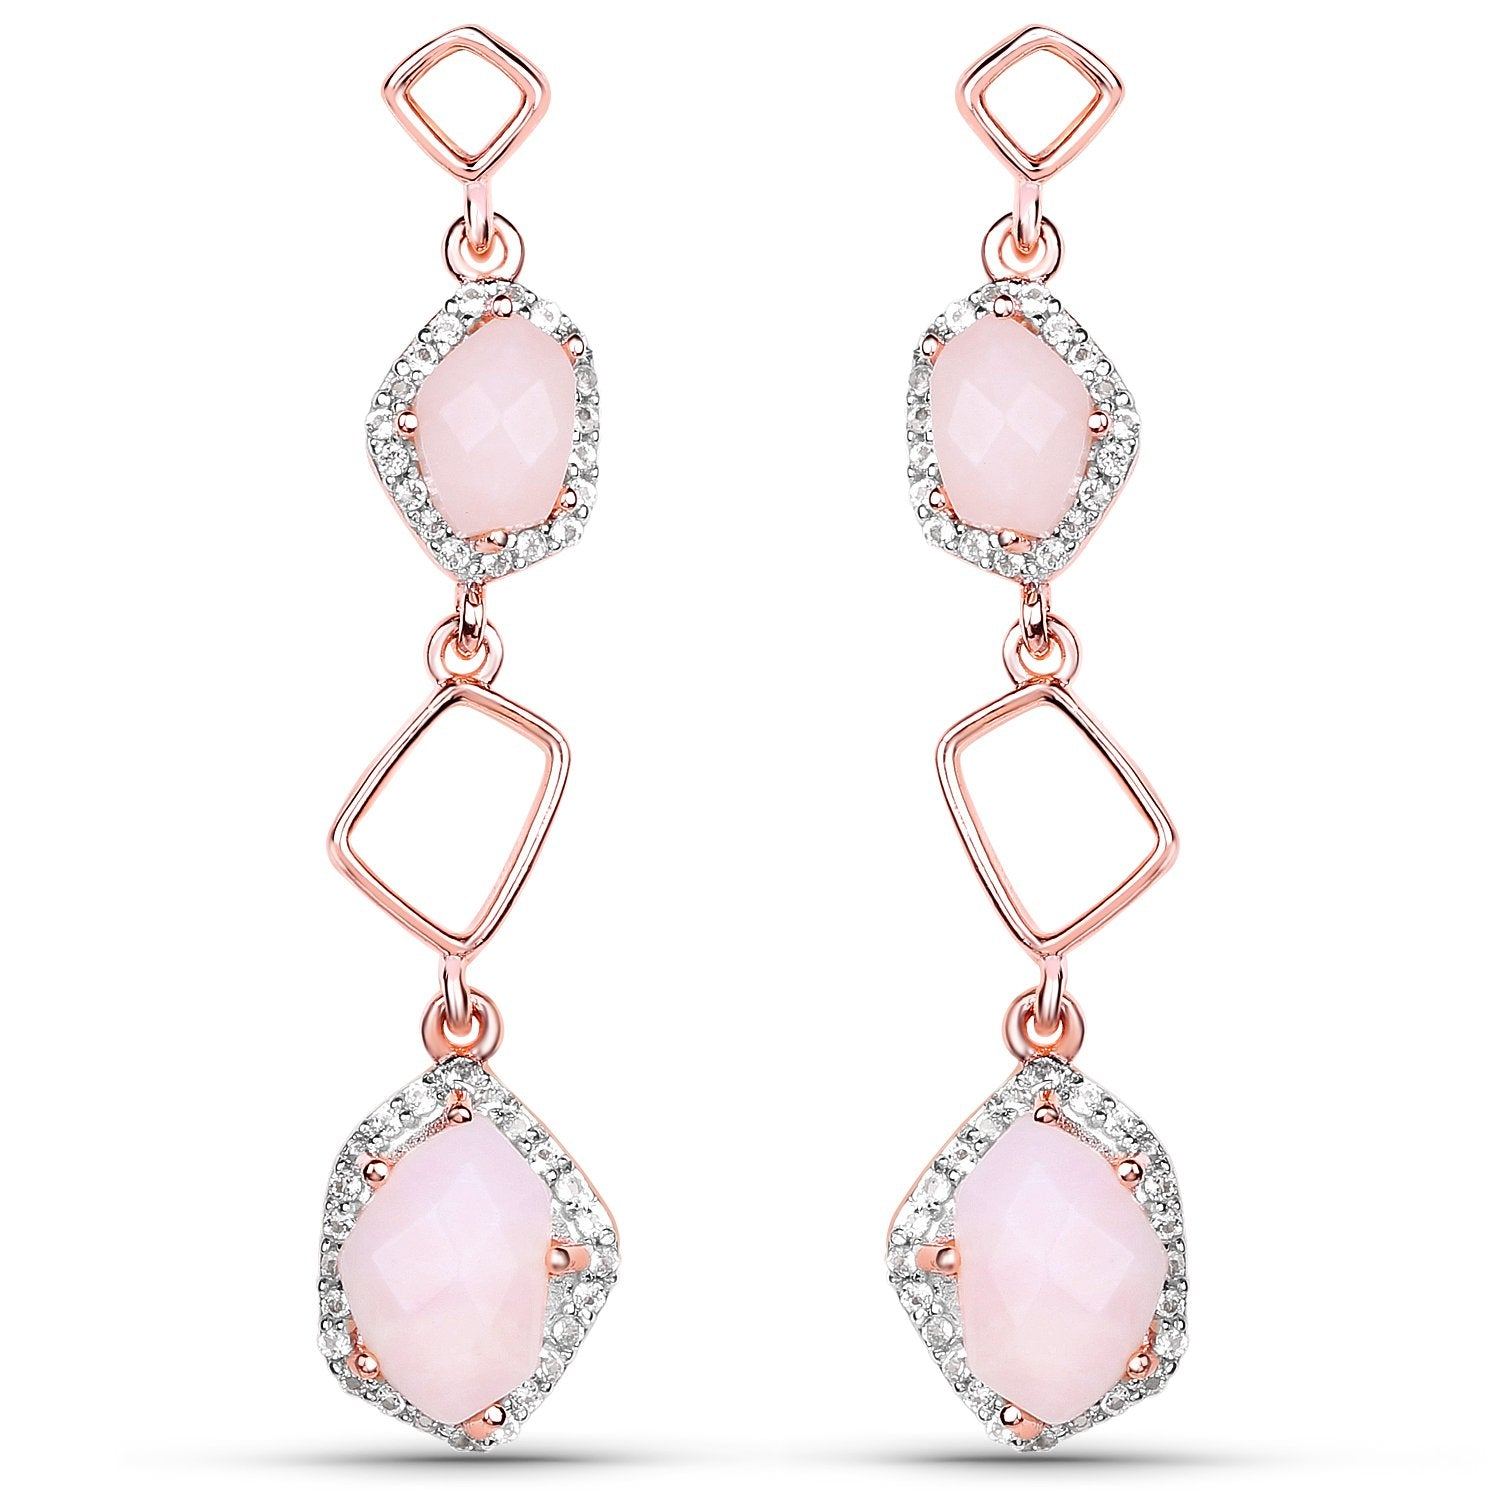 LoveHuang 2.82 Carats Genuine Pink Opal and White Topaz Dangle Earrings Solid .925 Sterling Silver With 18KT Rose Gold Plating